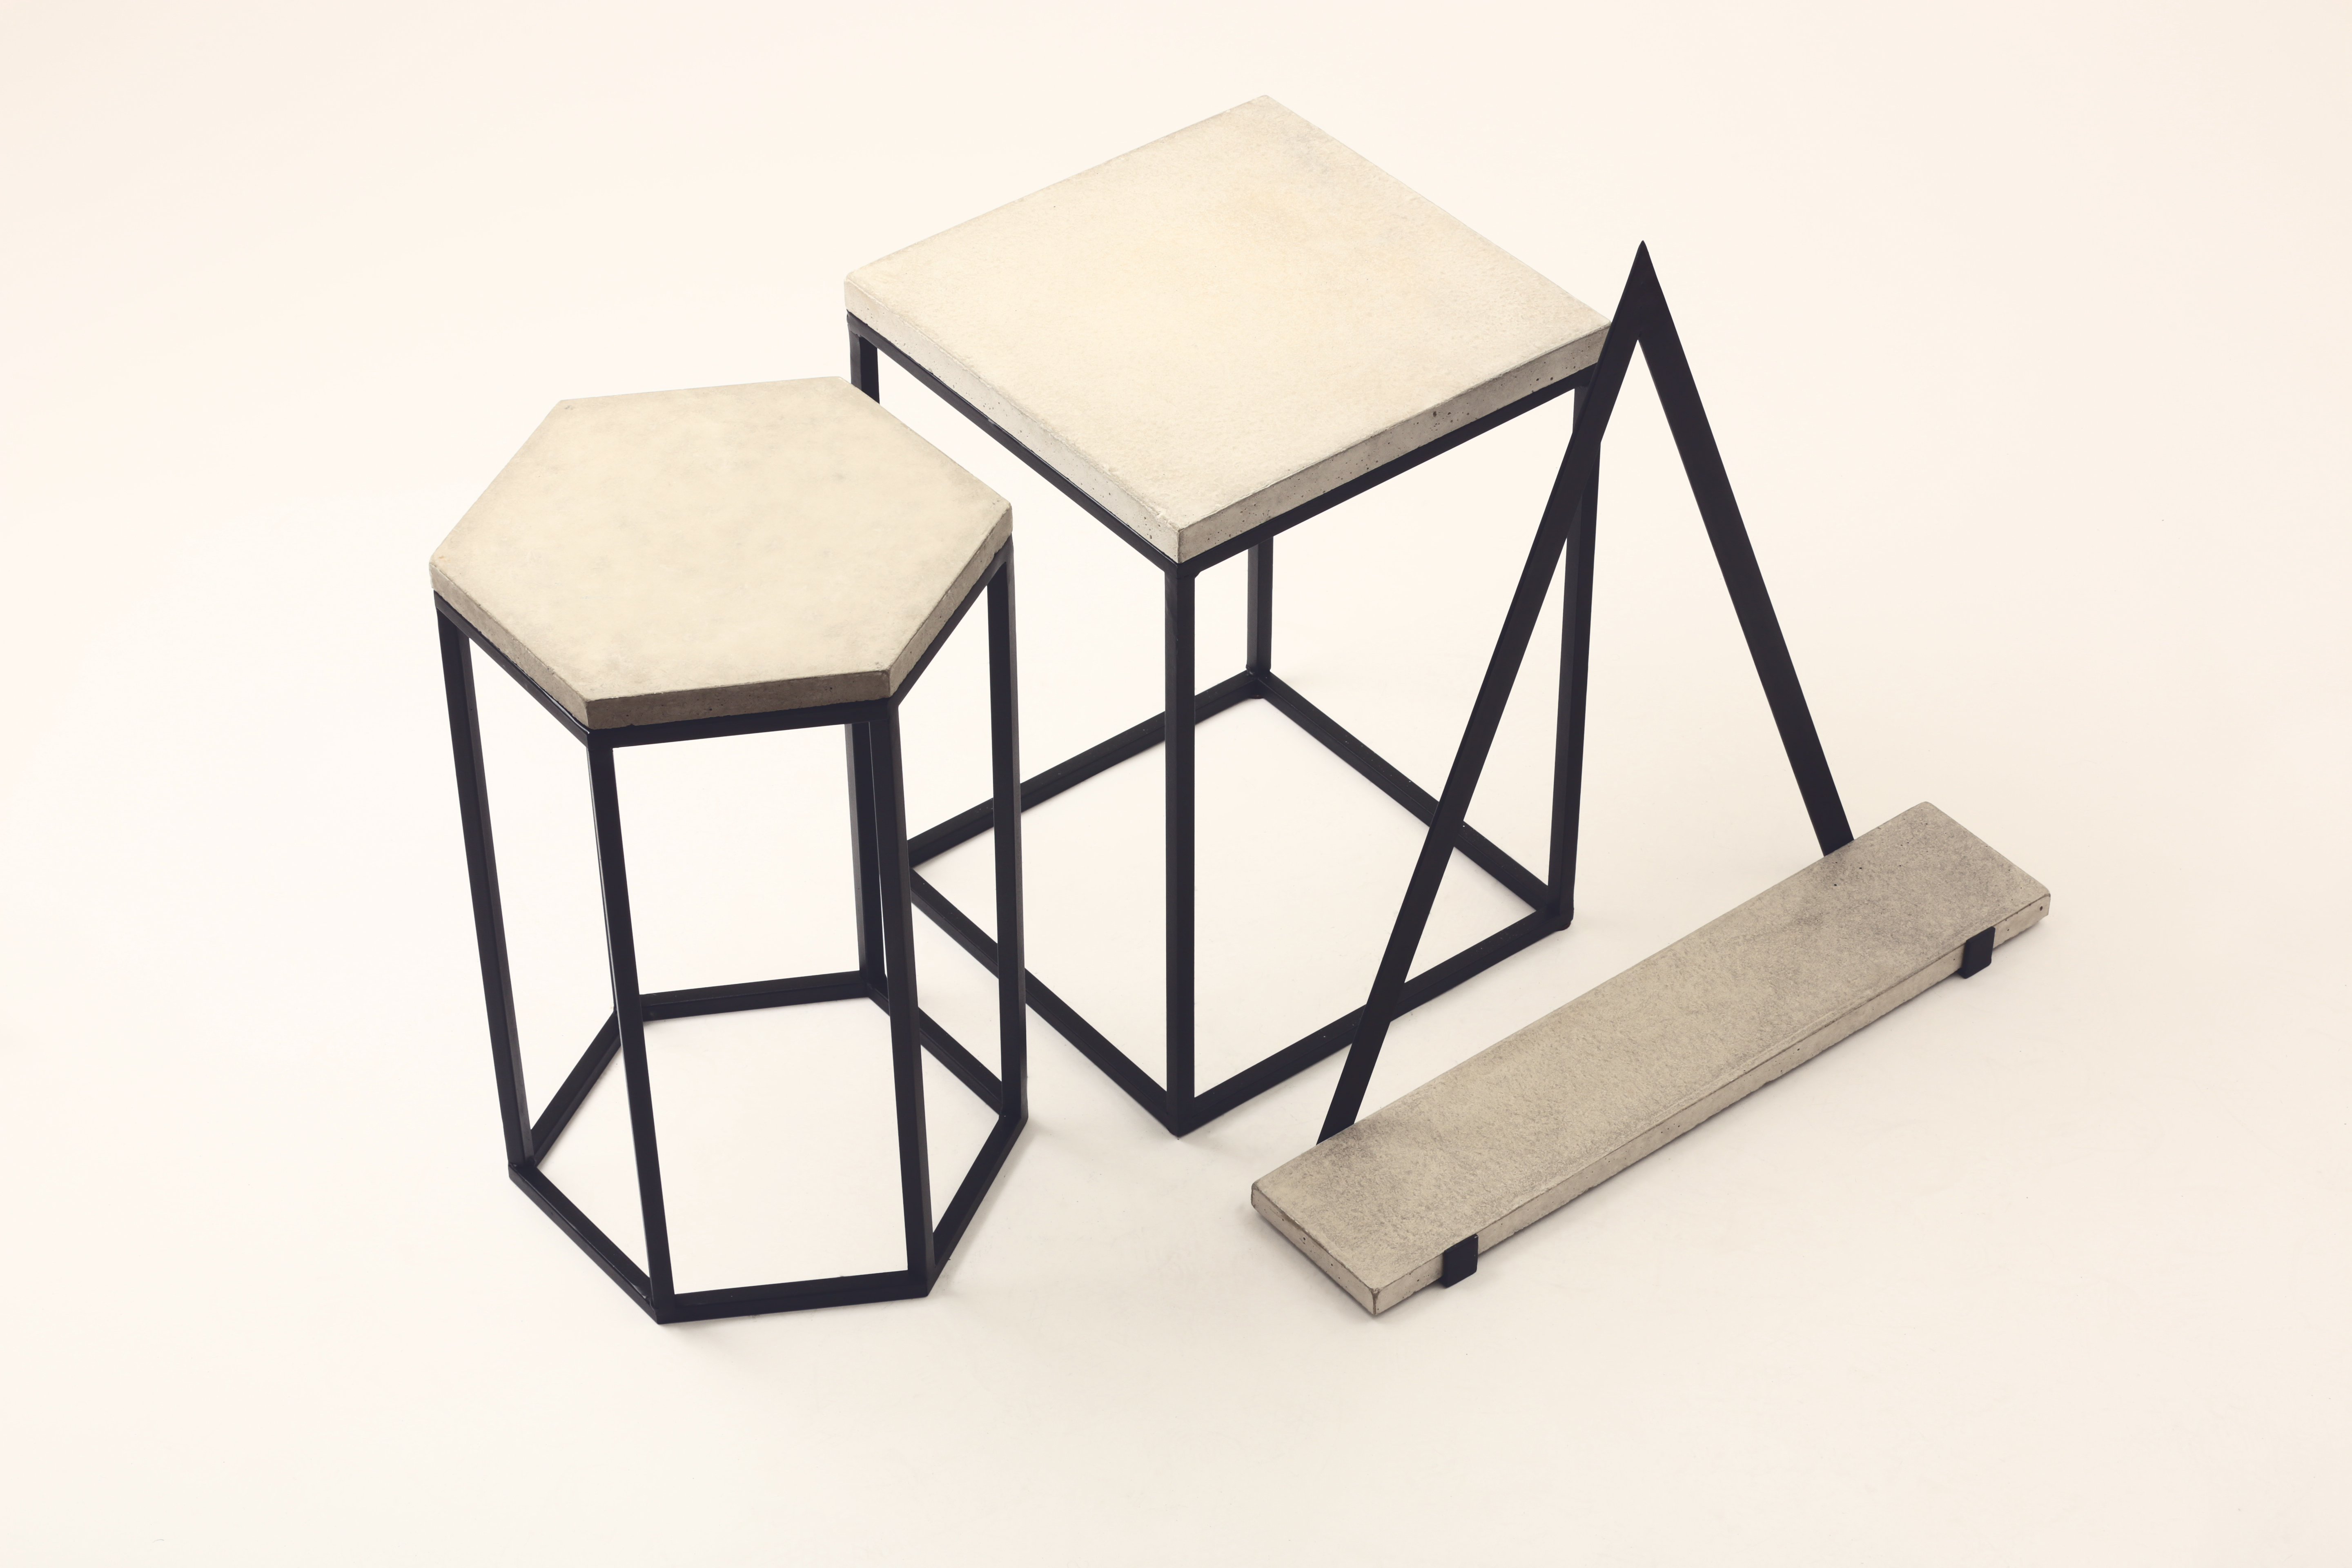 Concrete and Metal furniture